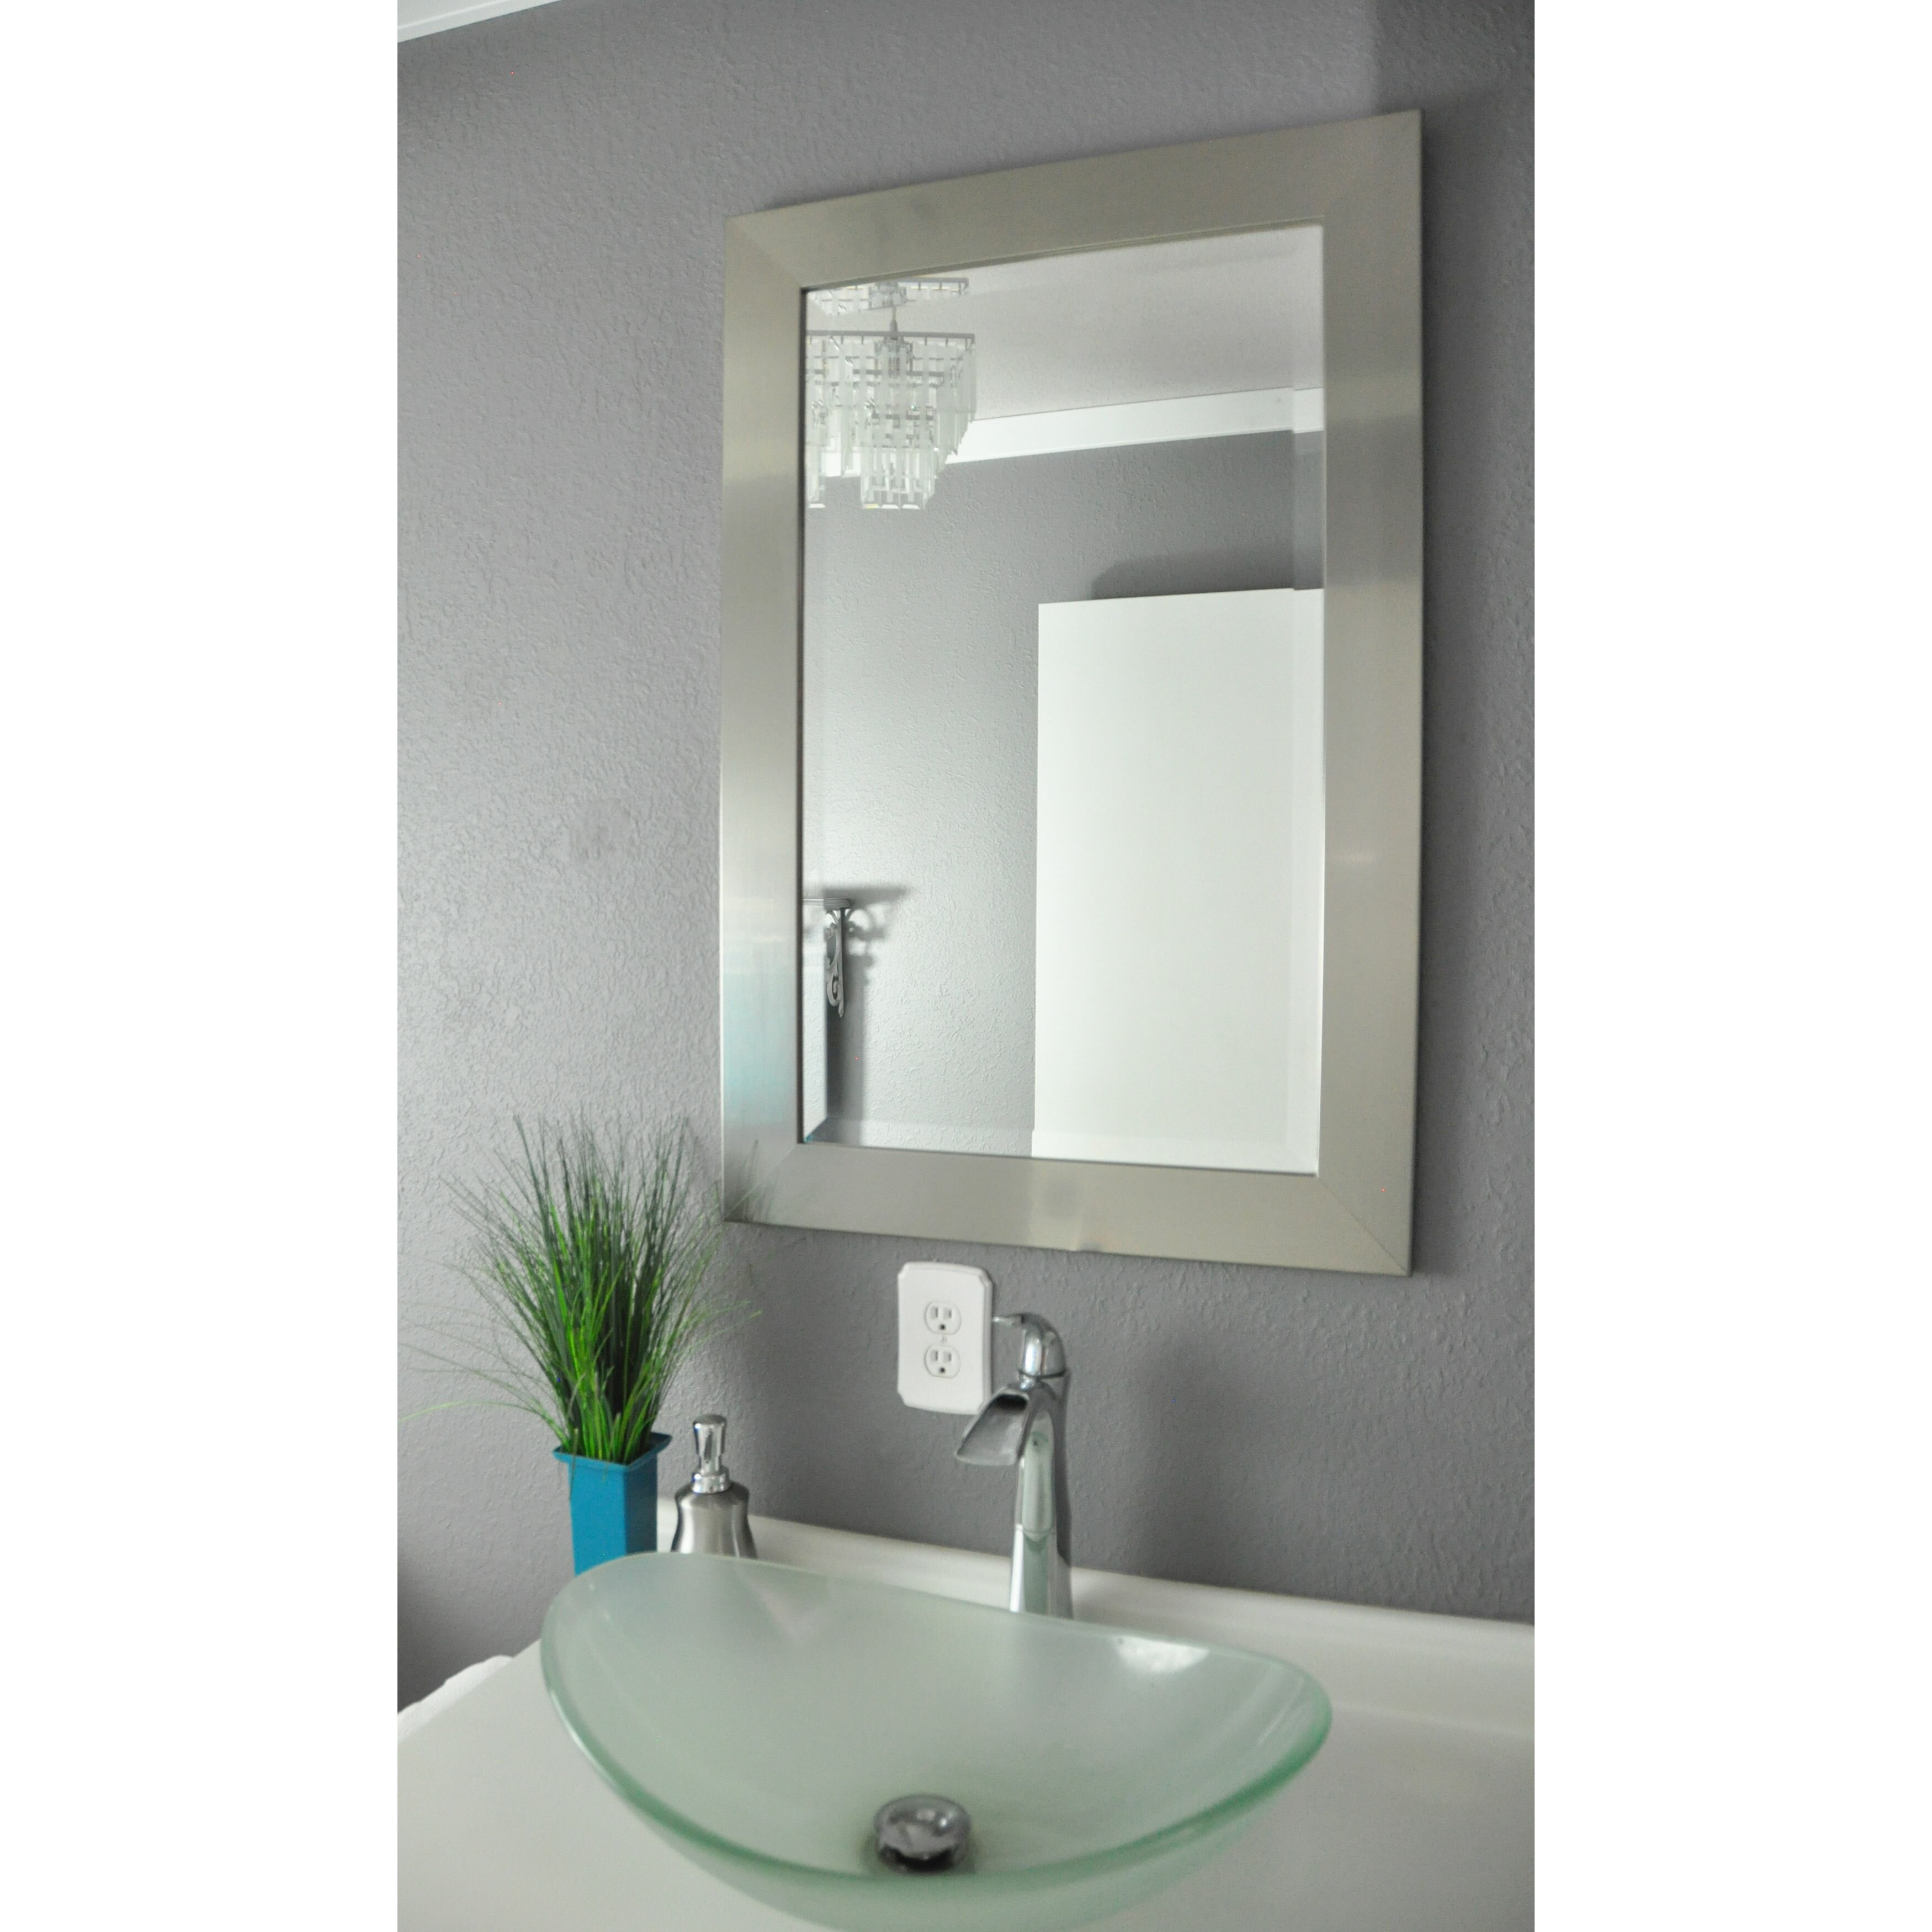 bathroom mirrors overstock latitude run wall mirror amp reviews wayfair ca 11157